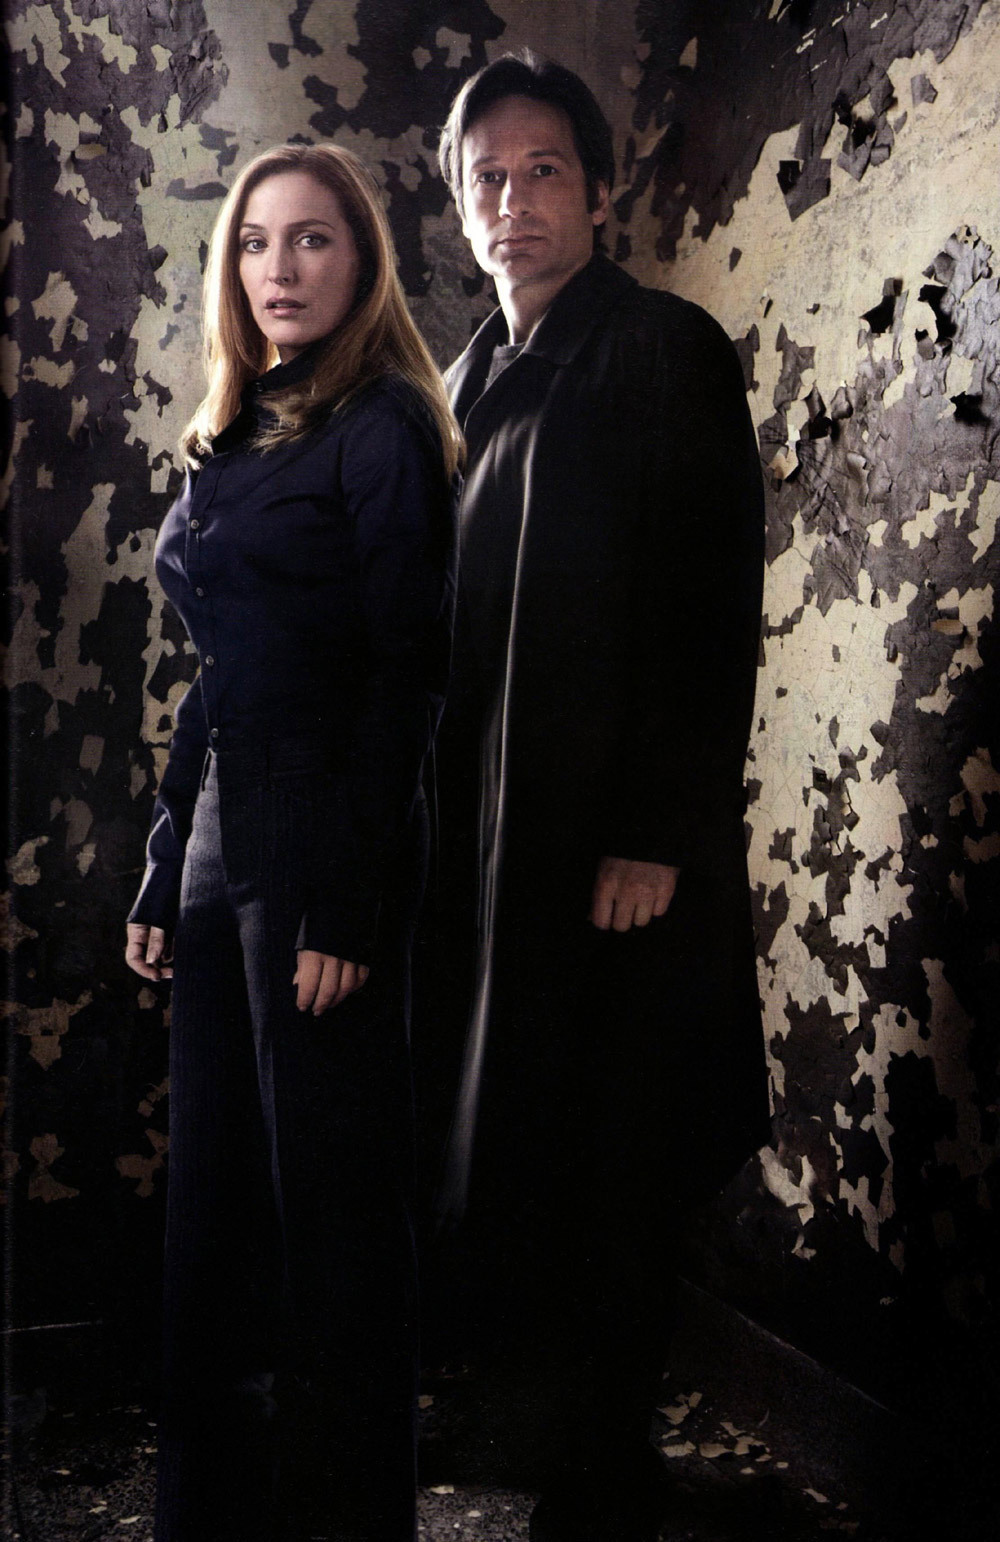 14184 download wallpaper Cinema, People, Actors, X Files screensavers and pictures for free